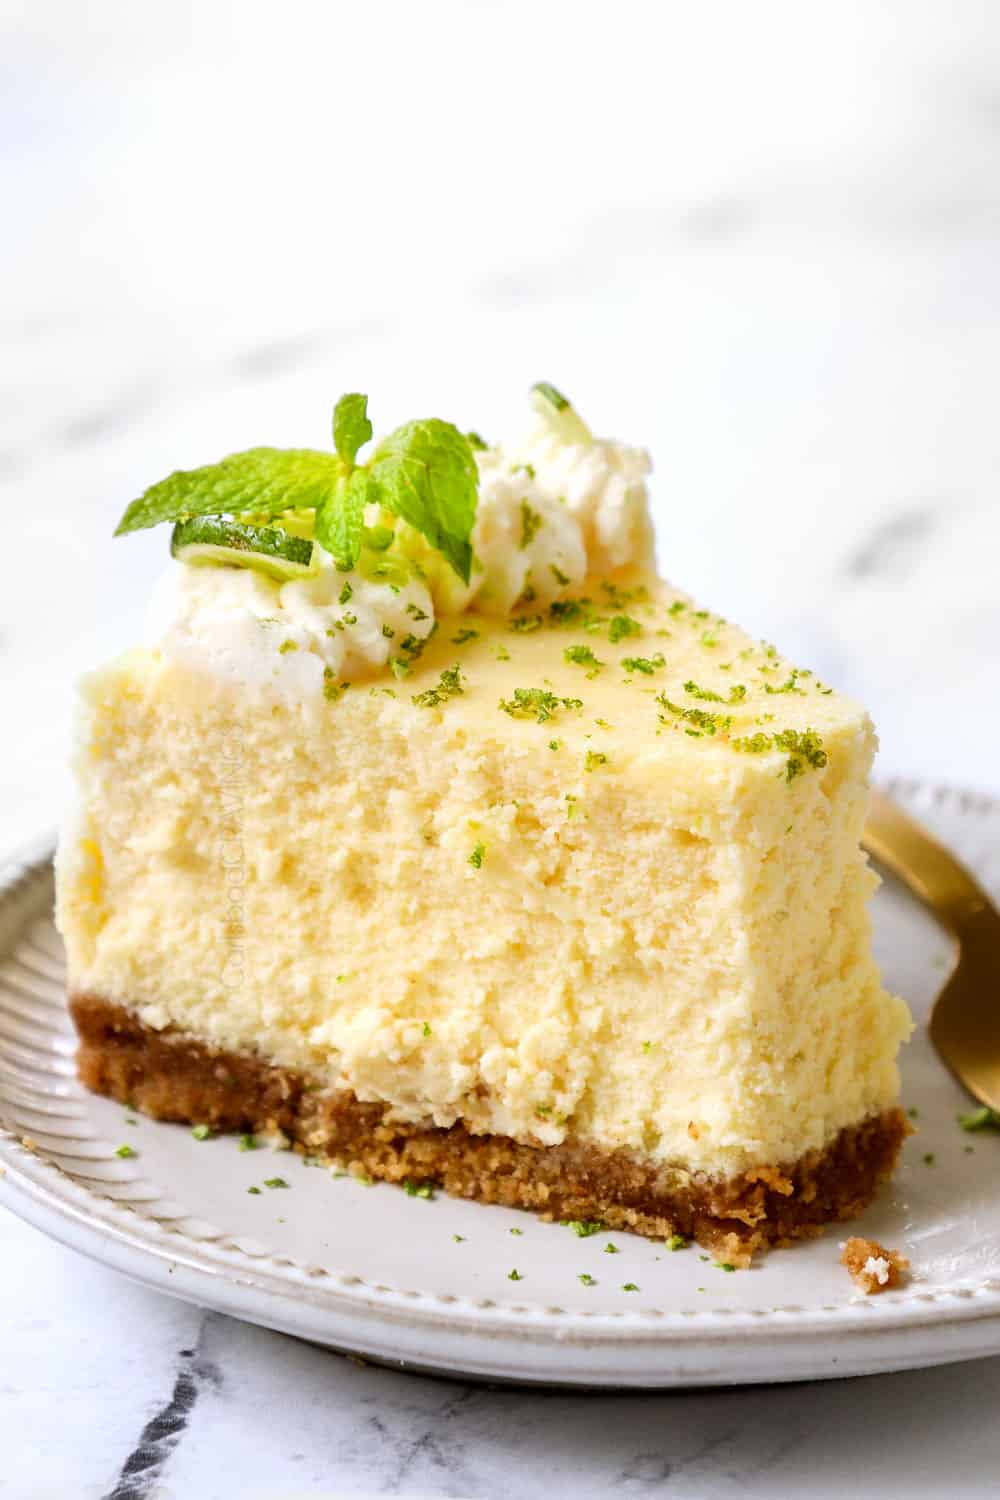 a slice of key lime cheesecake with a bite taken out of it showing how creamy it is